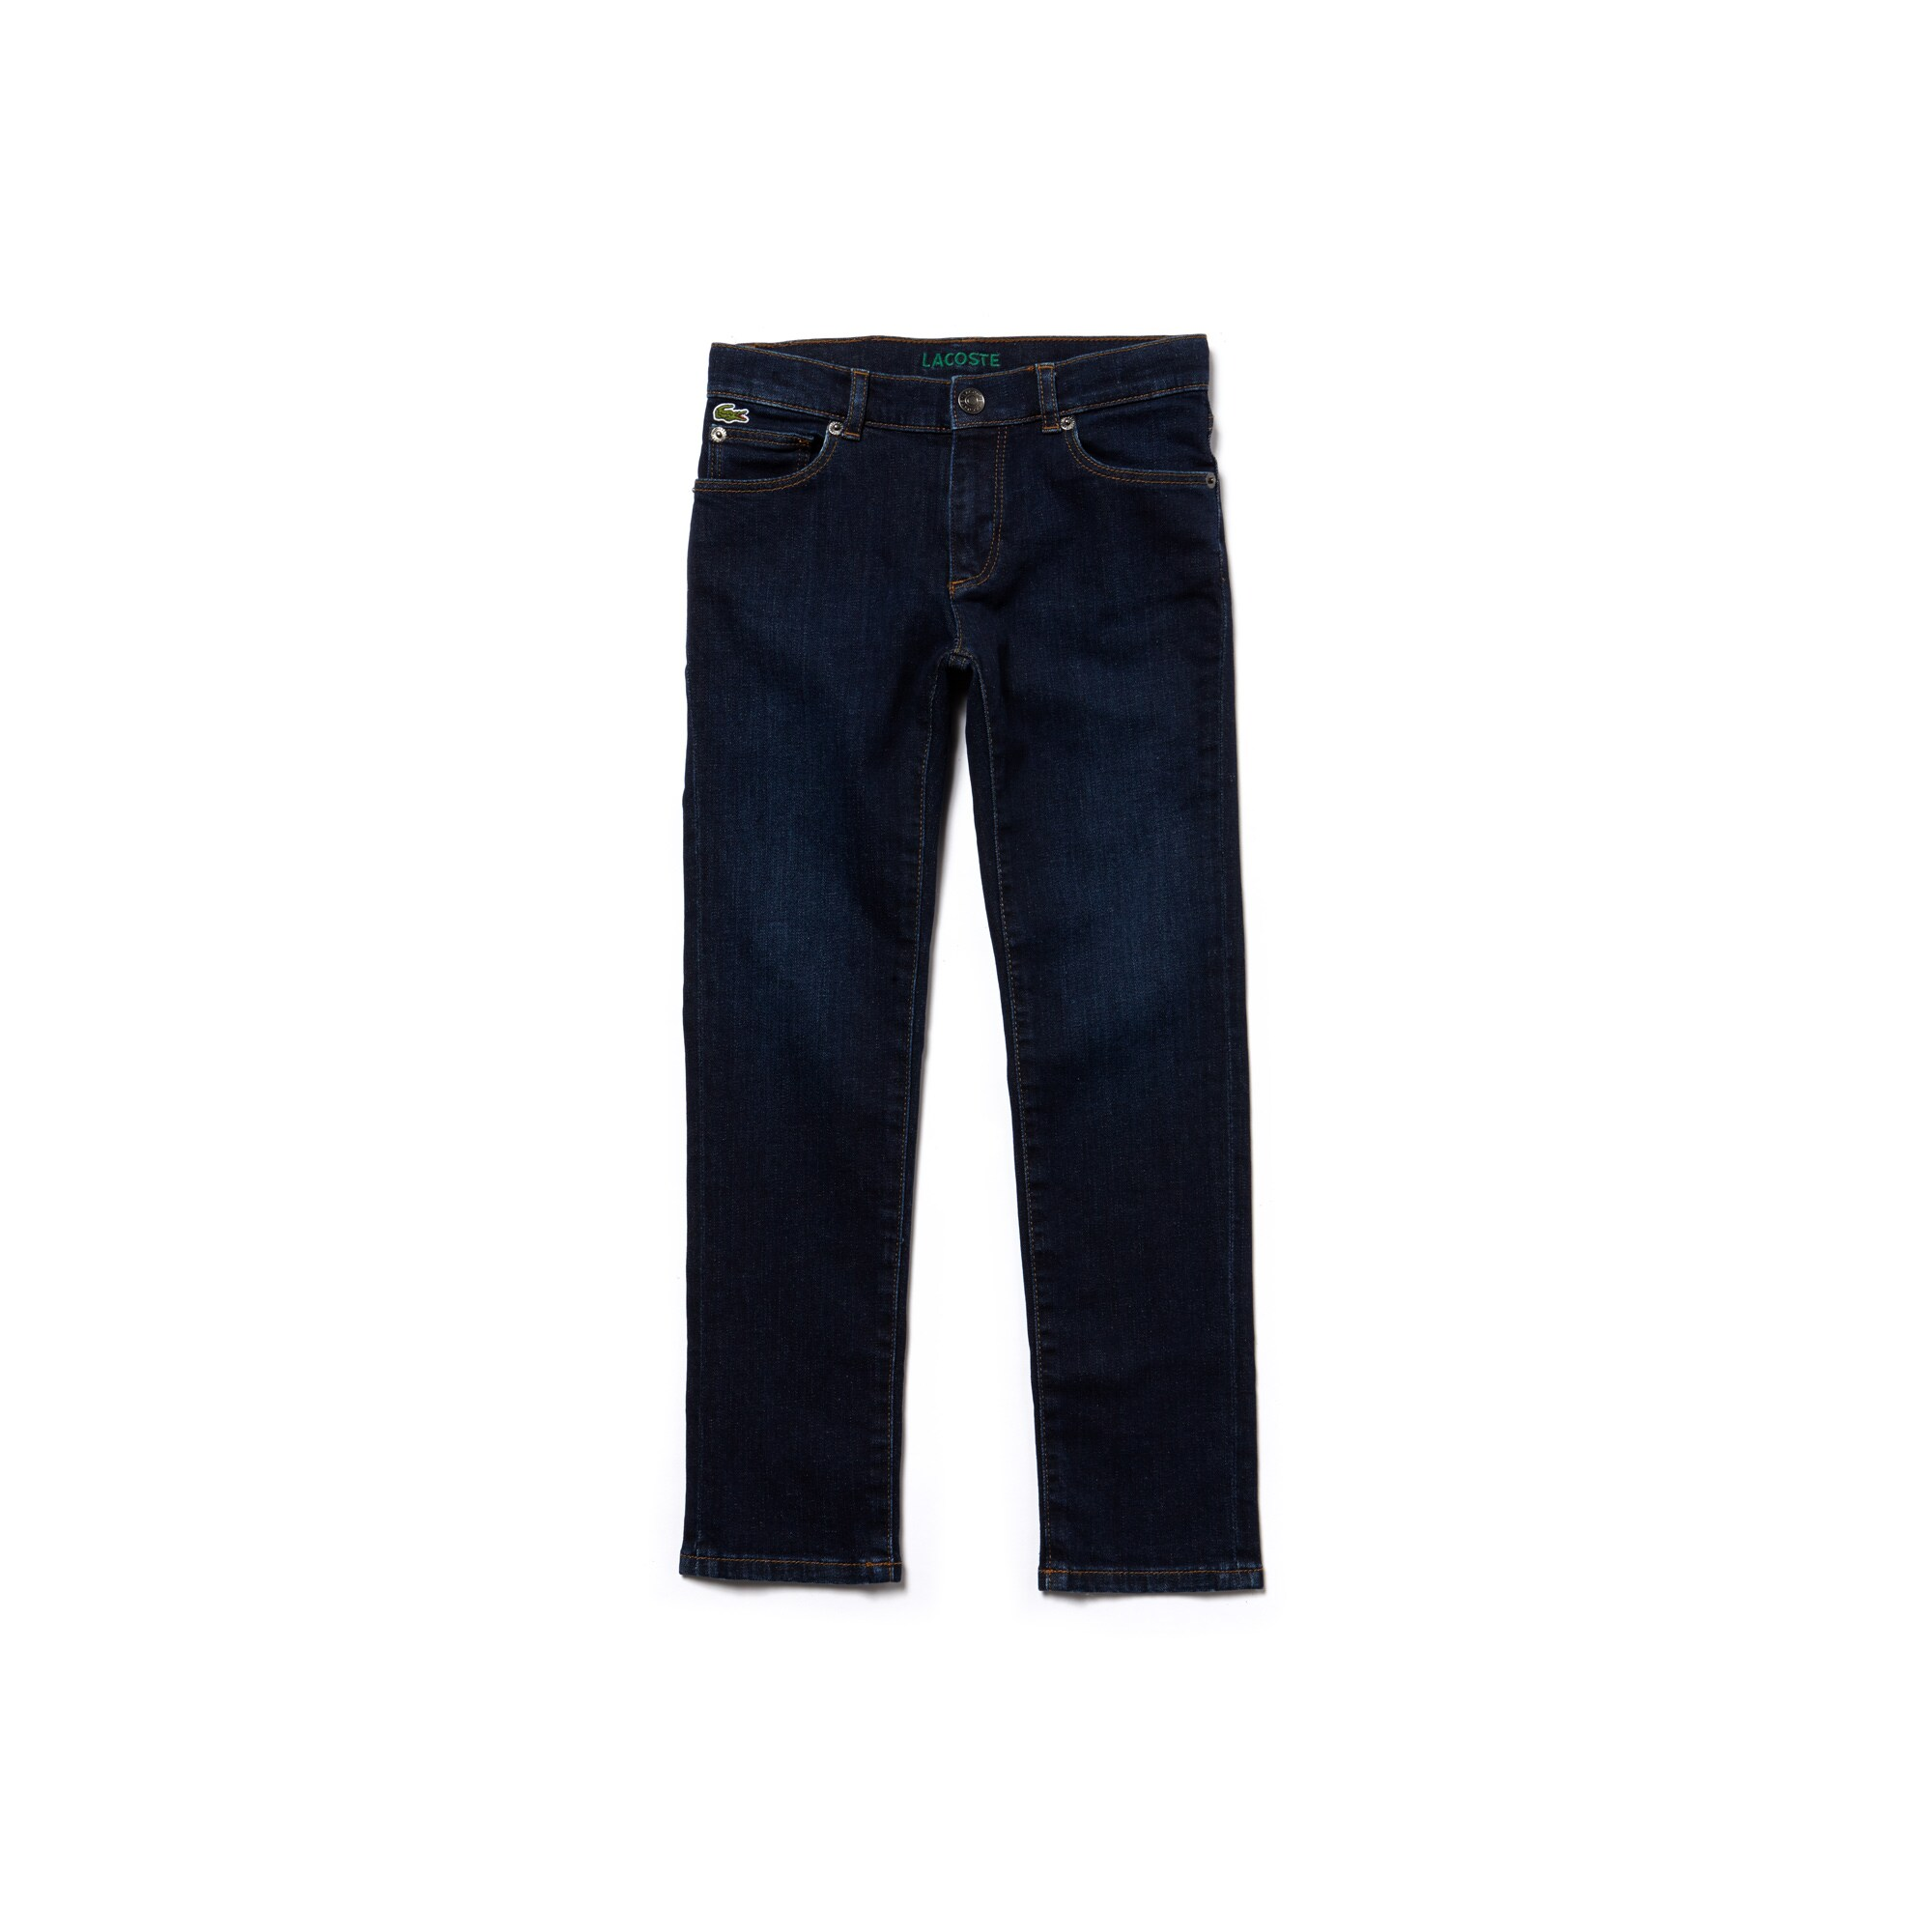 Jeans Kids in cotone denim